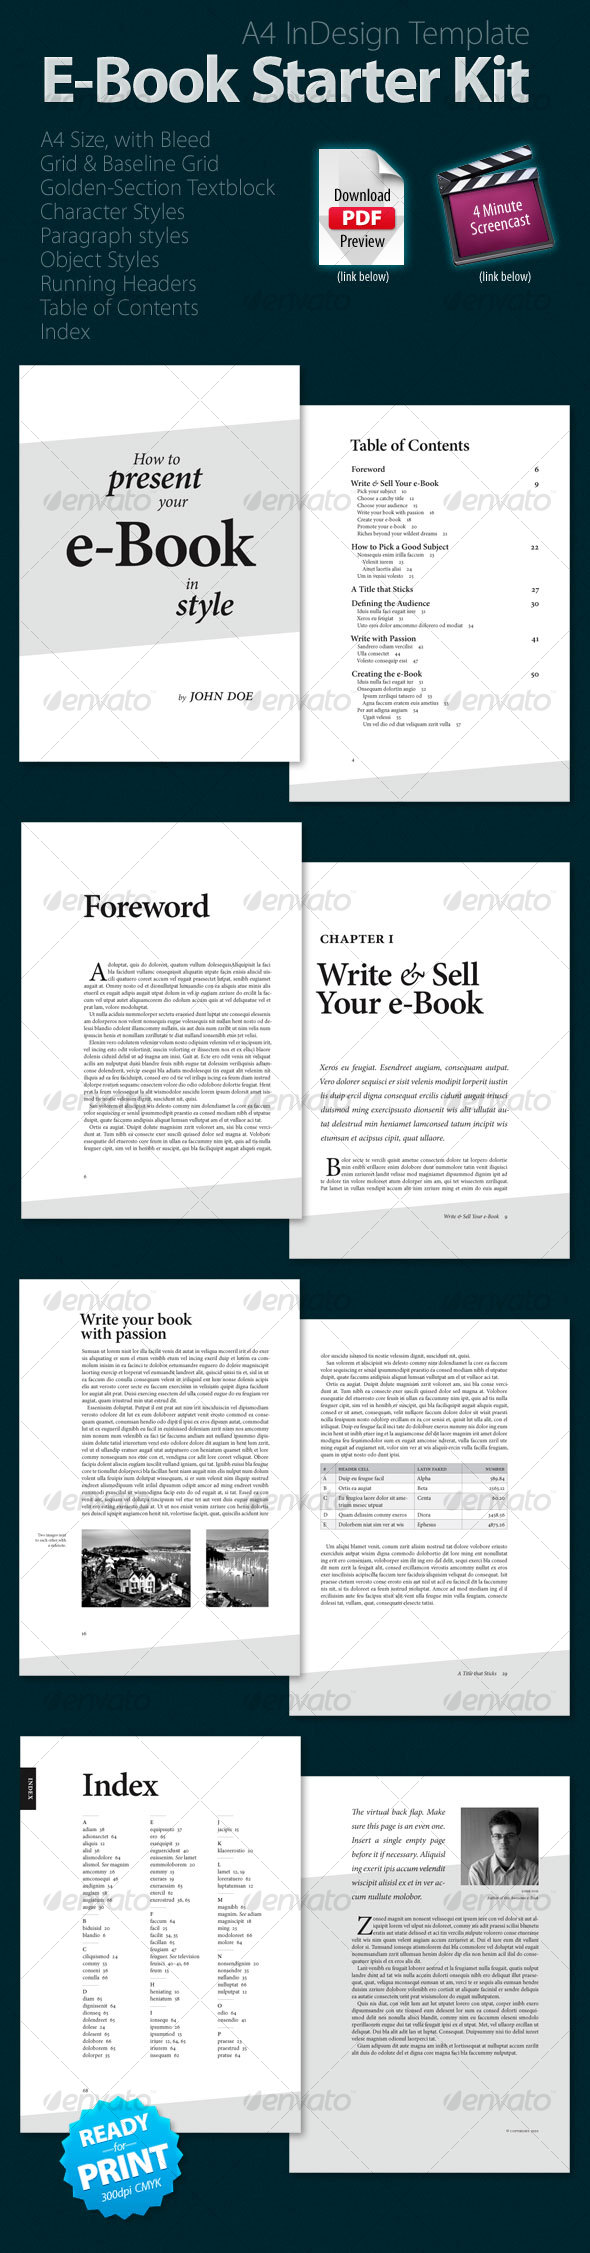 indesign templates for books - e book starter kit graphicriver